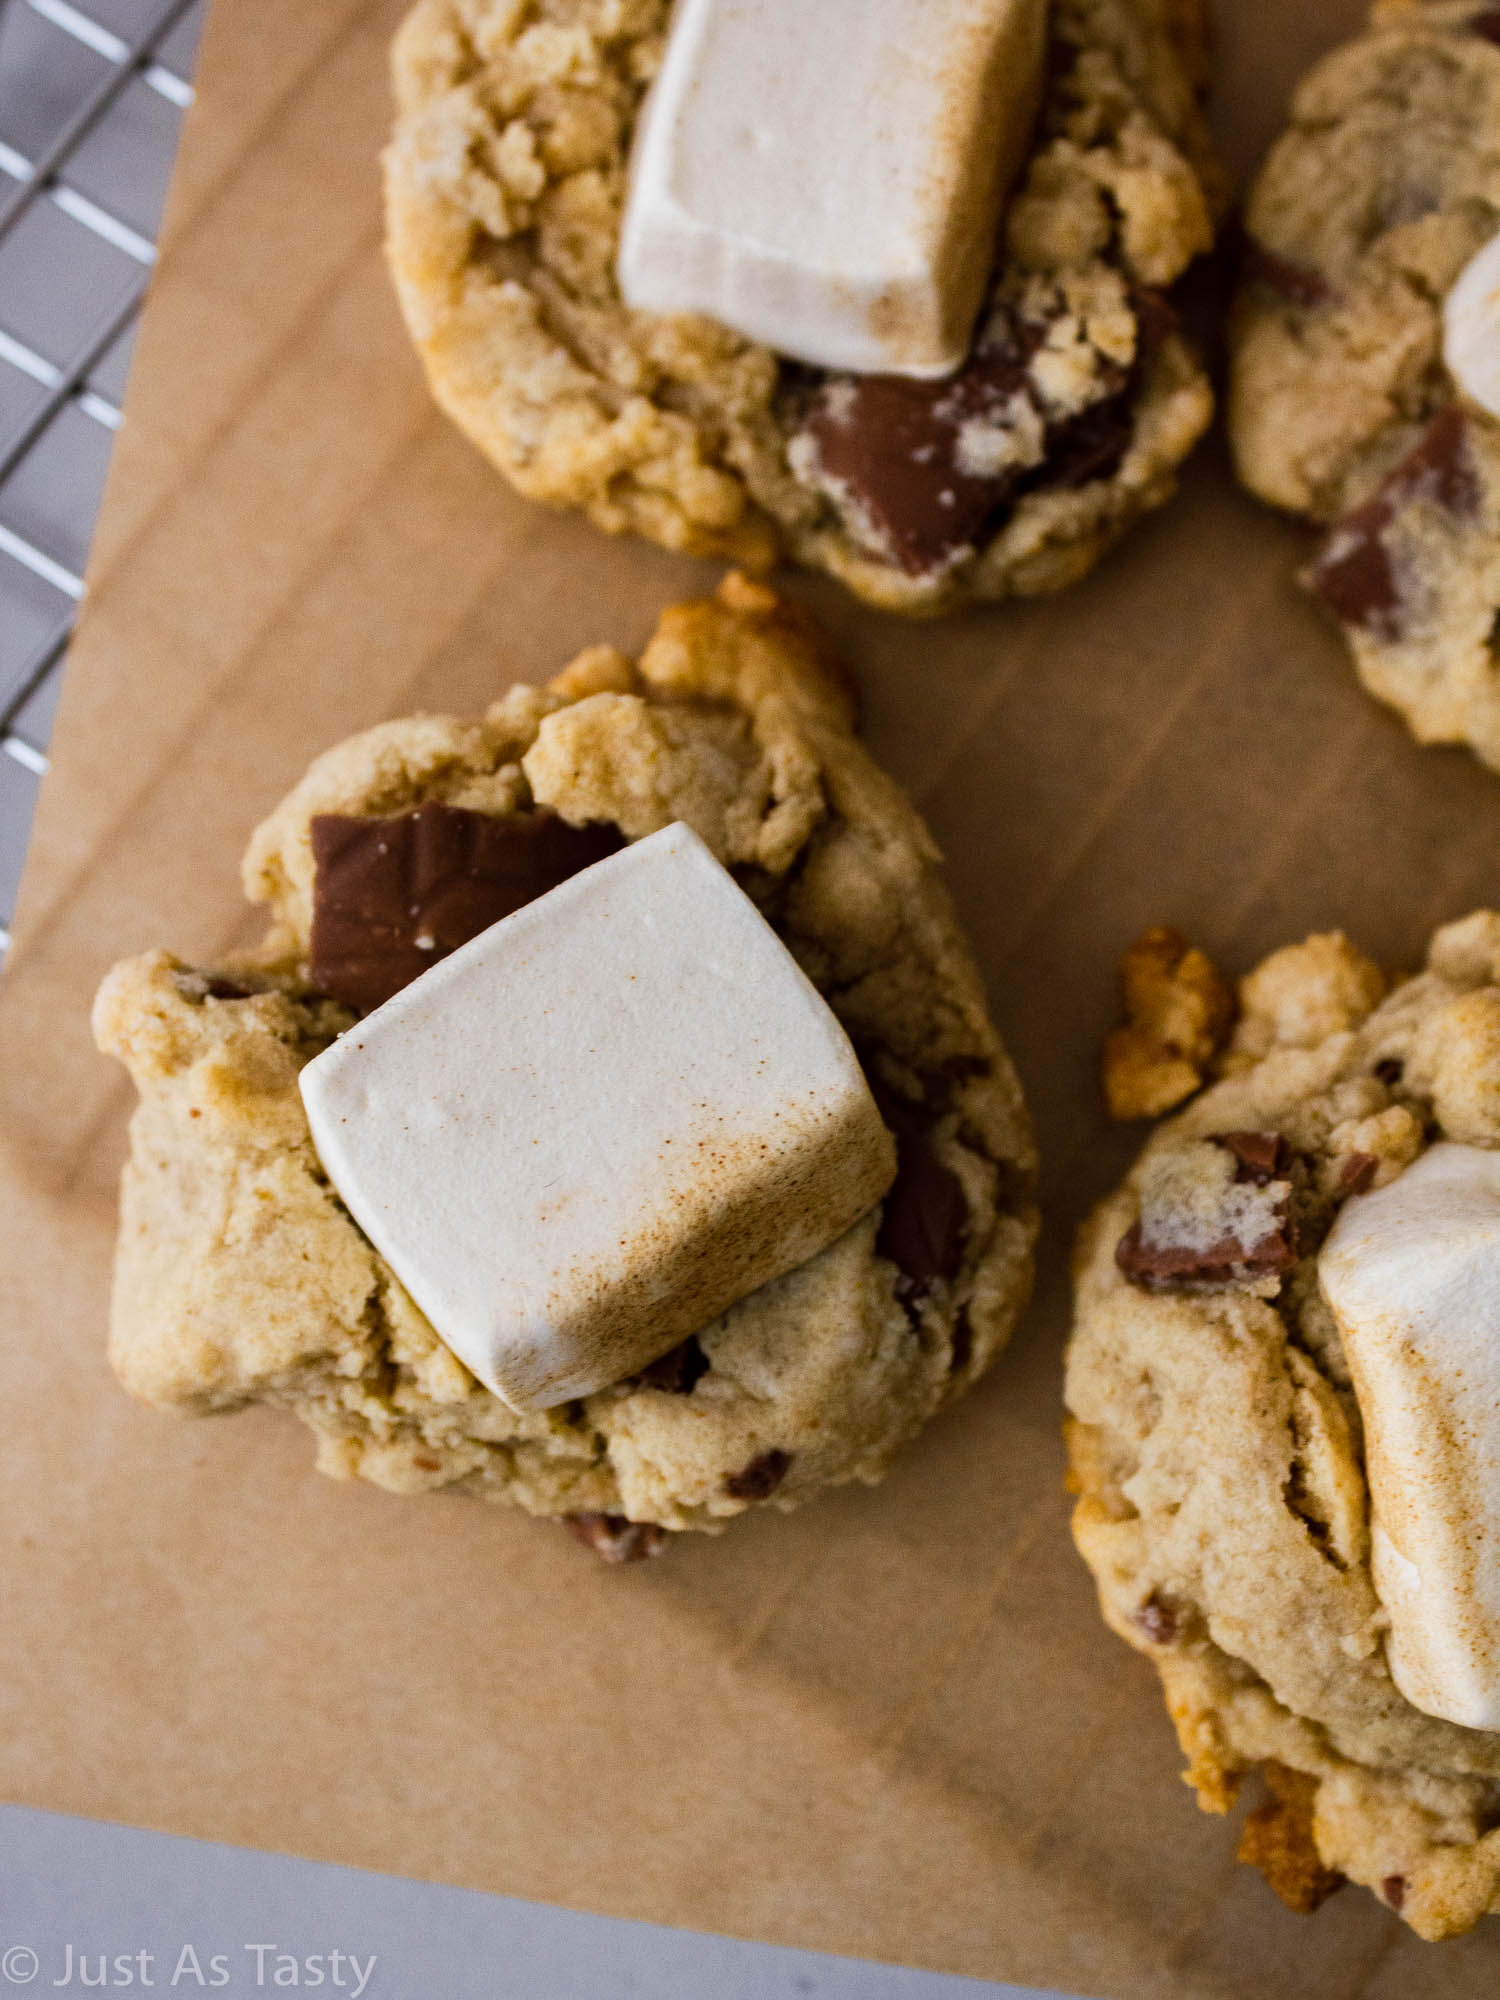 Close-up of chocolate chip cookies topped with marshmallows on brown parchment.